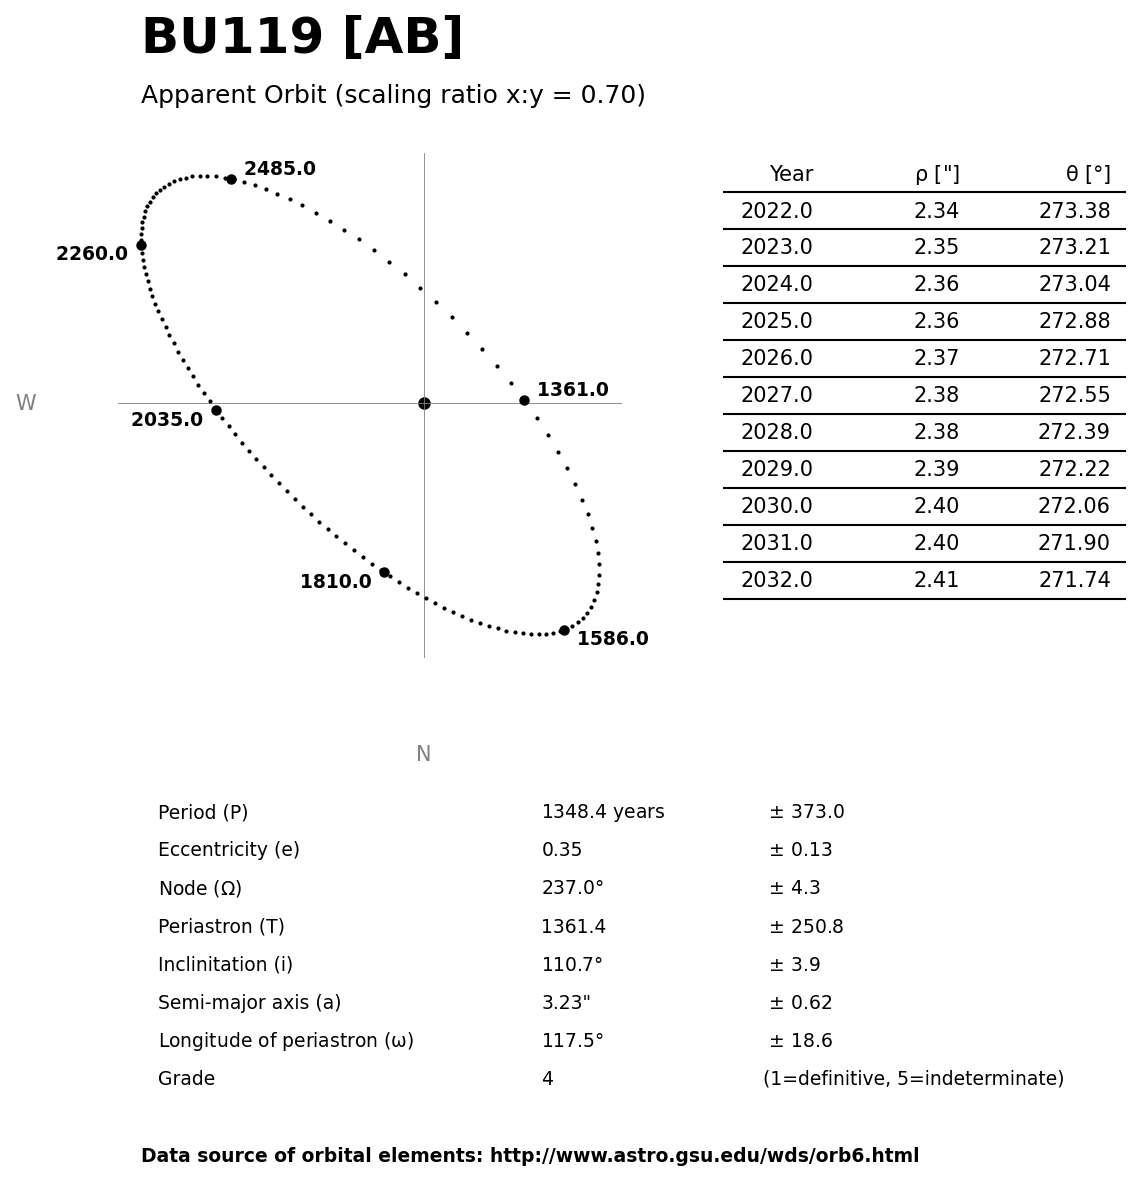 ../images/binary-star-orbits/BU119-AB-orbit.jpg